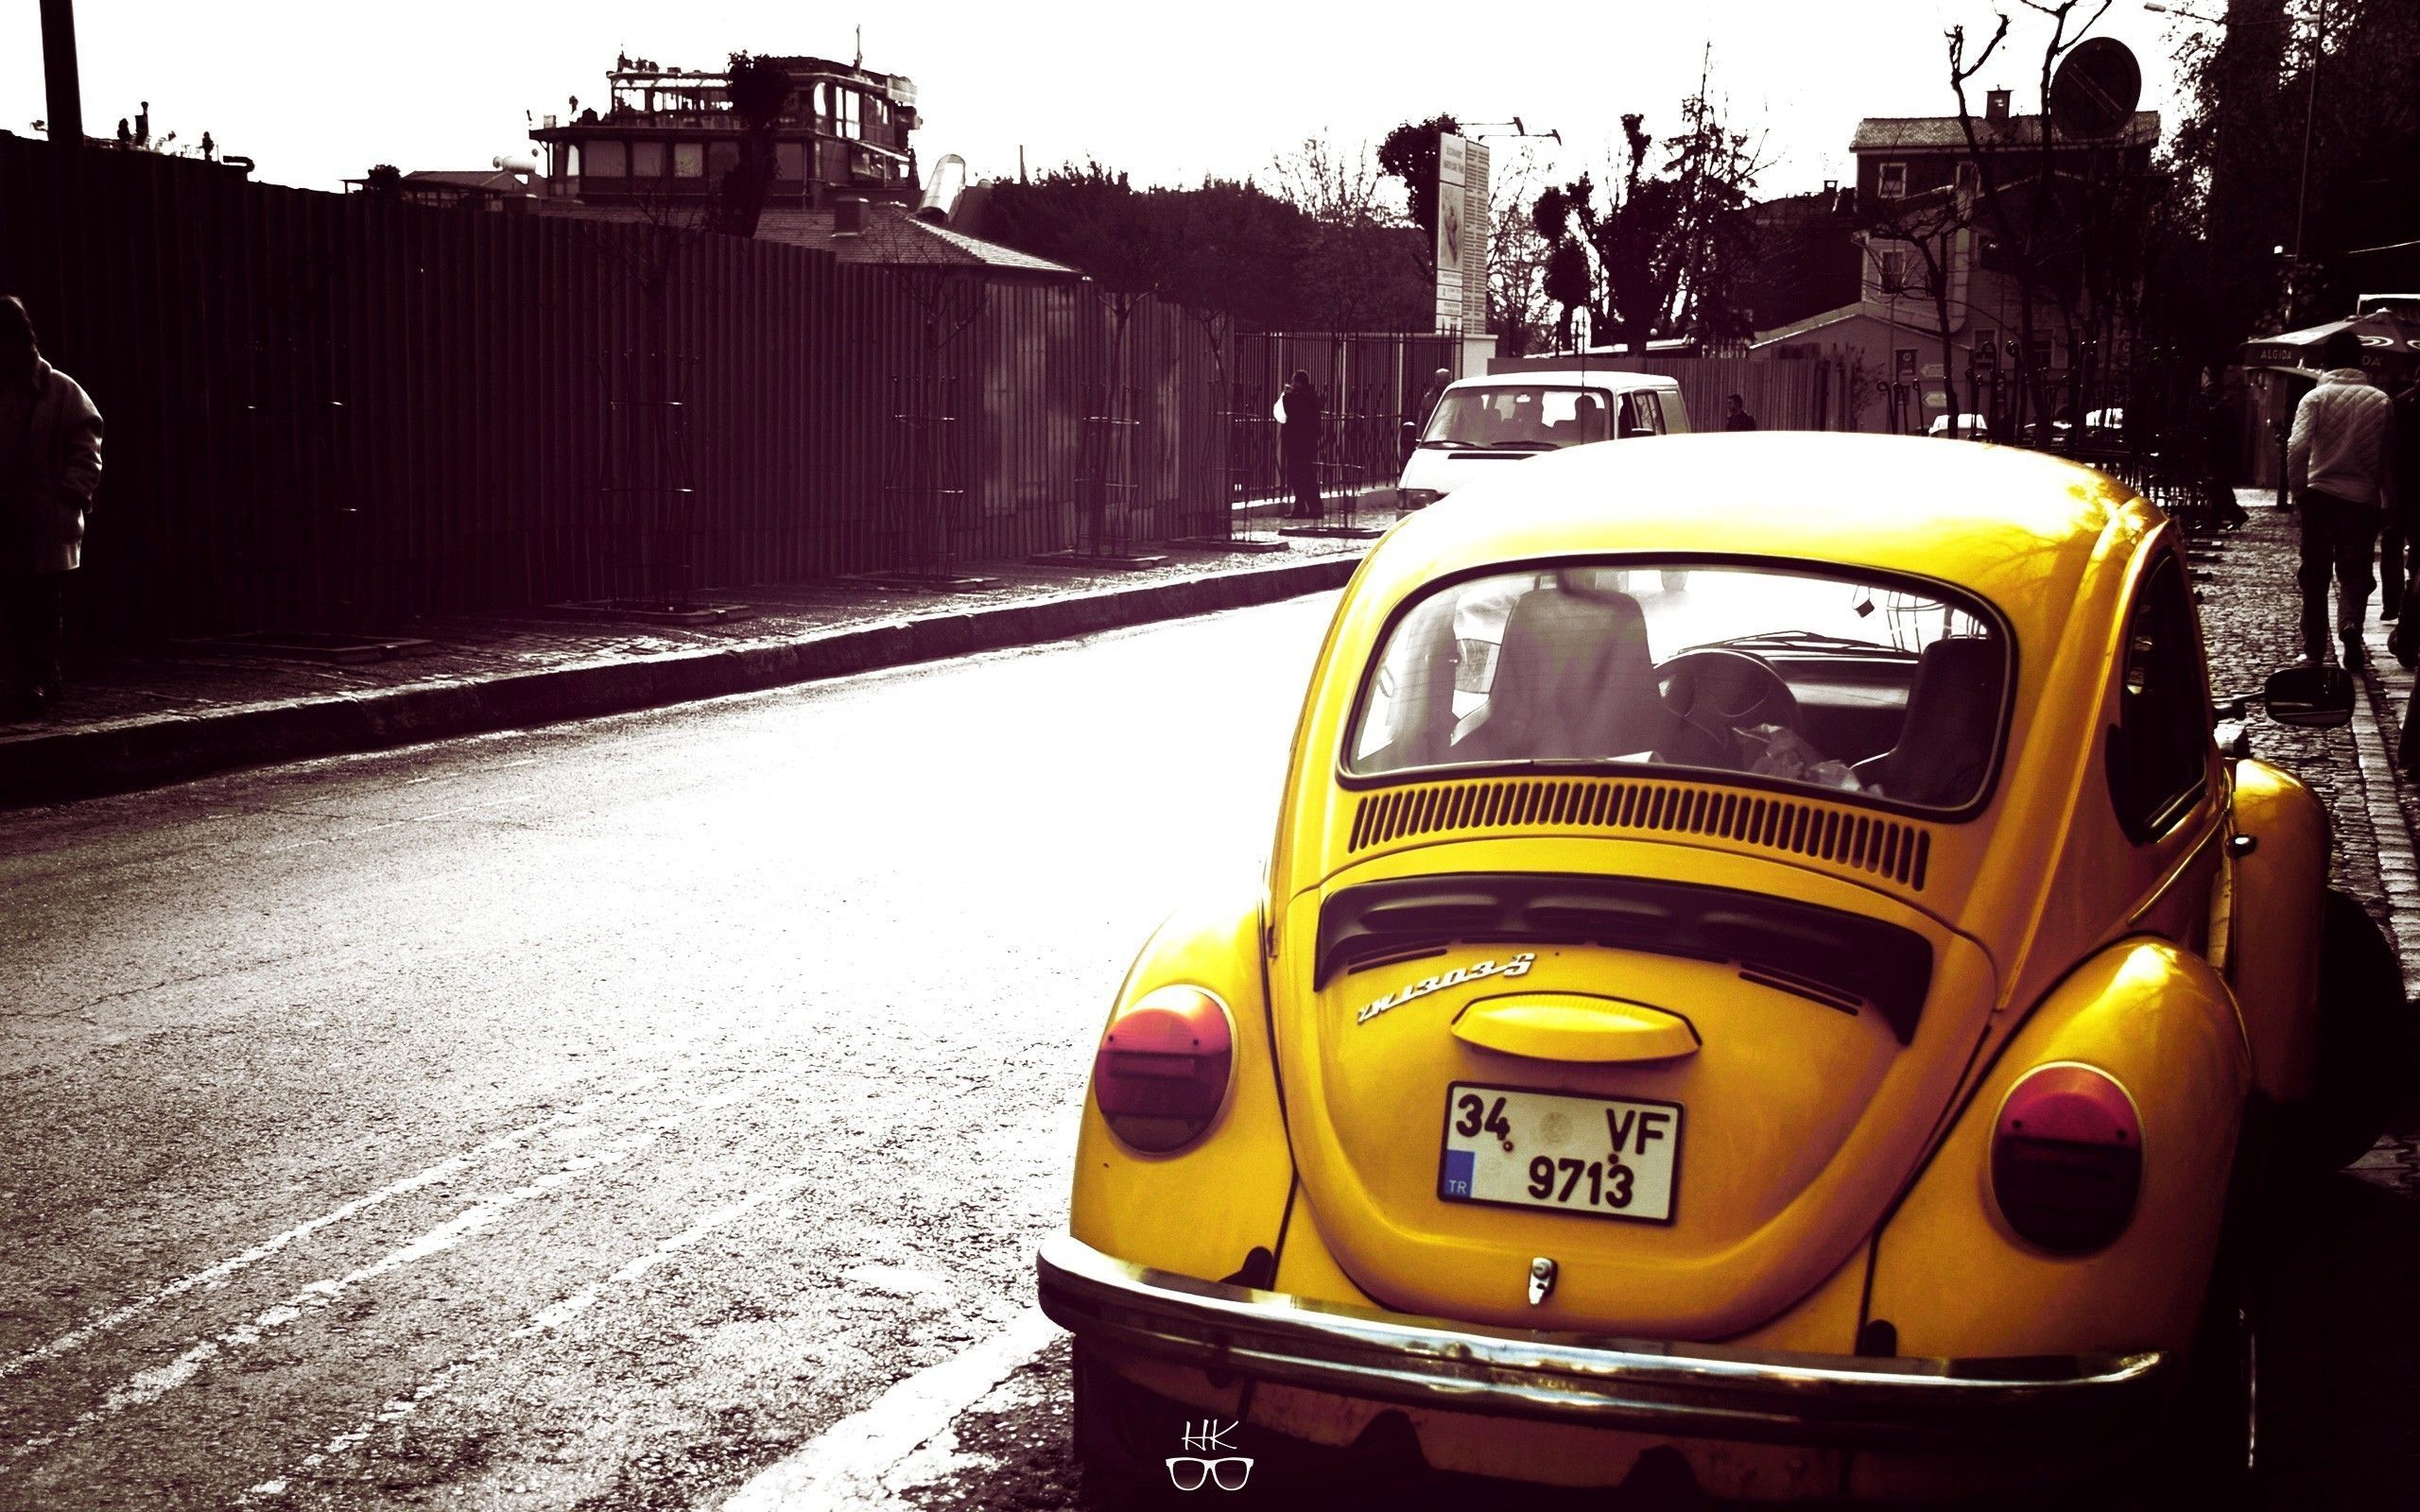 Yellow Classic Vw Beetle I Would Have Never Noticed Or Appreciated